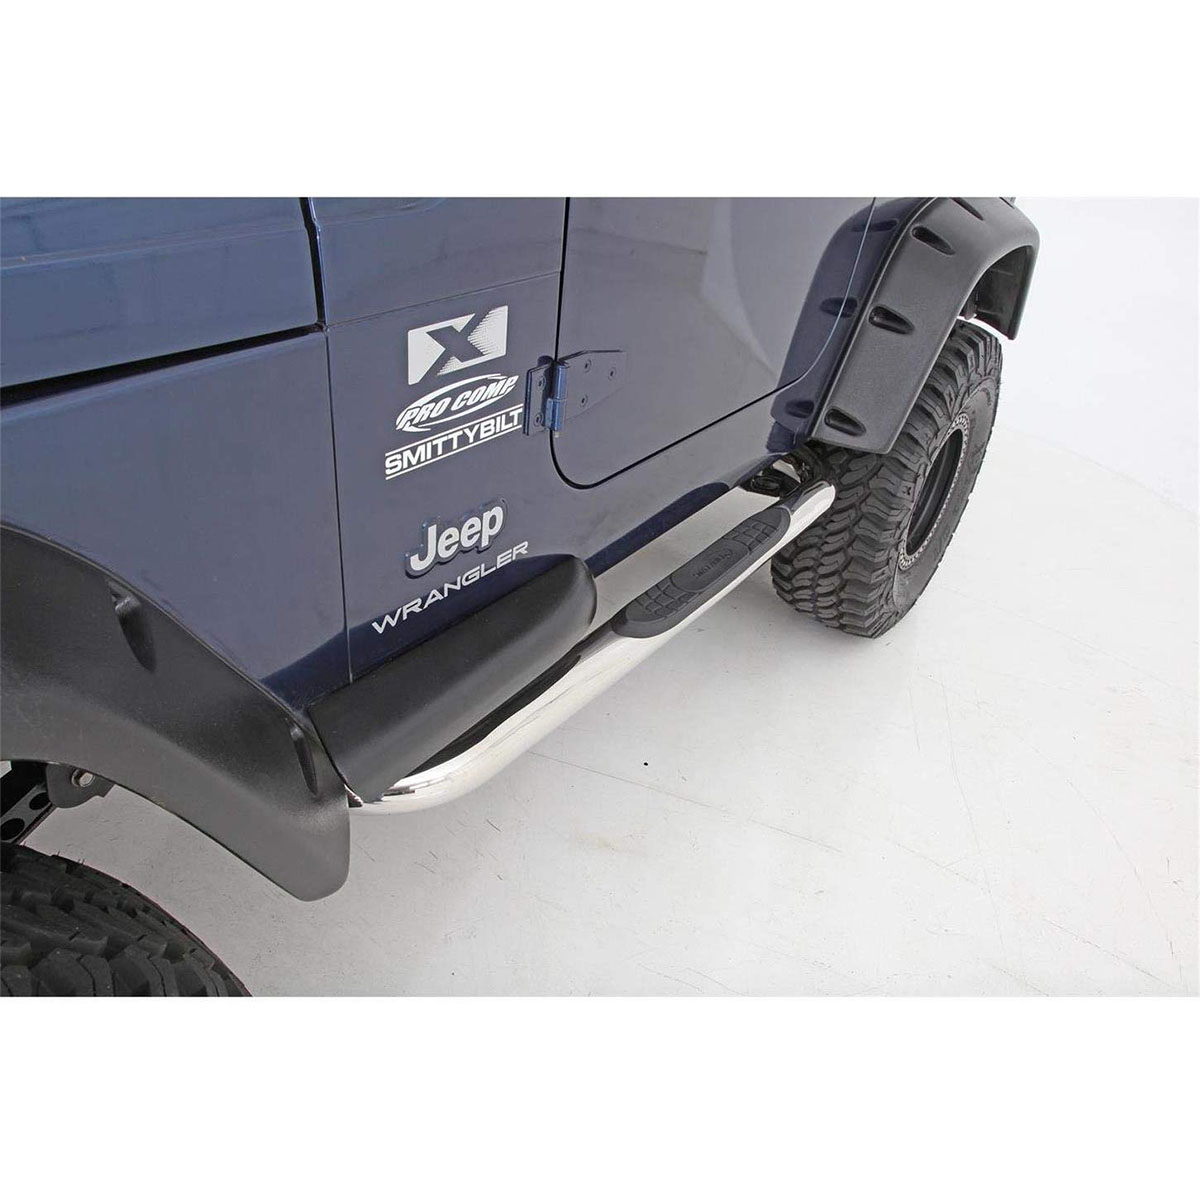 Smittybilt Sure Step 3 inch Side Bars 97-06 Wranglers Stainless Steel